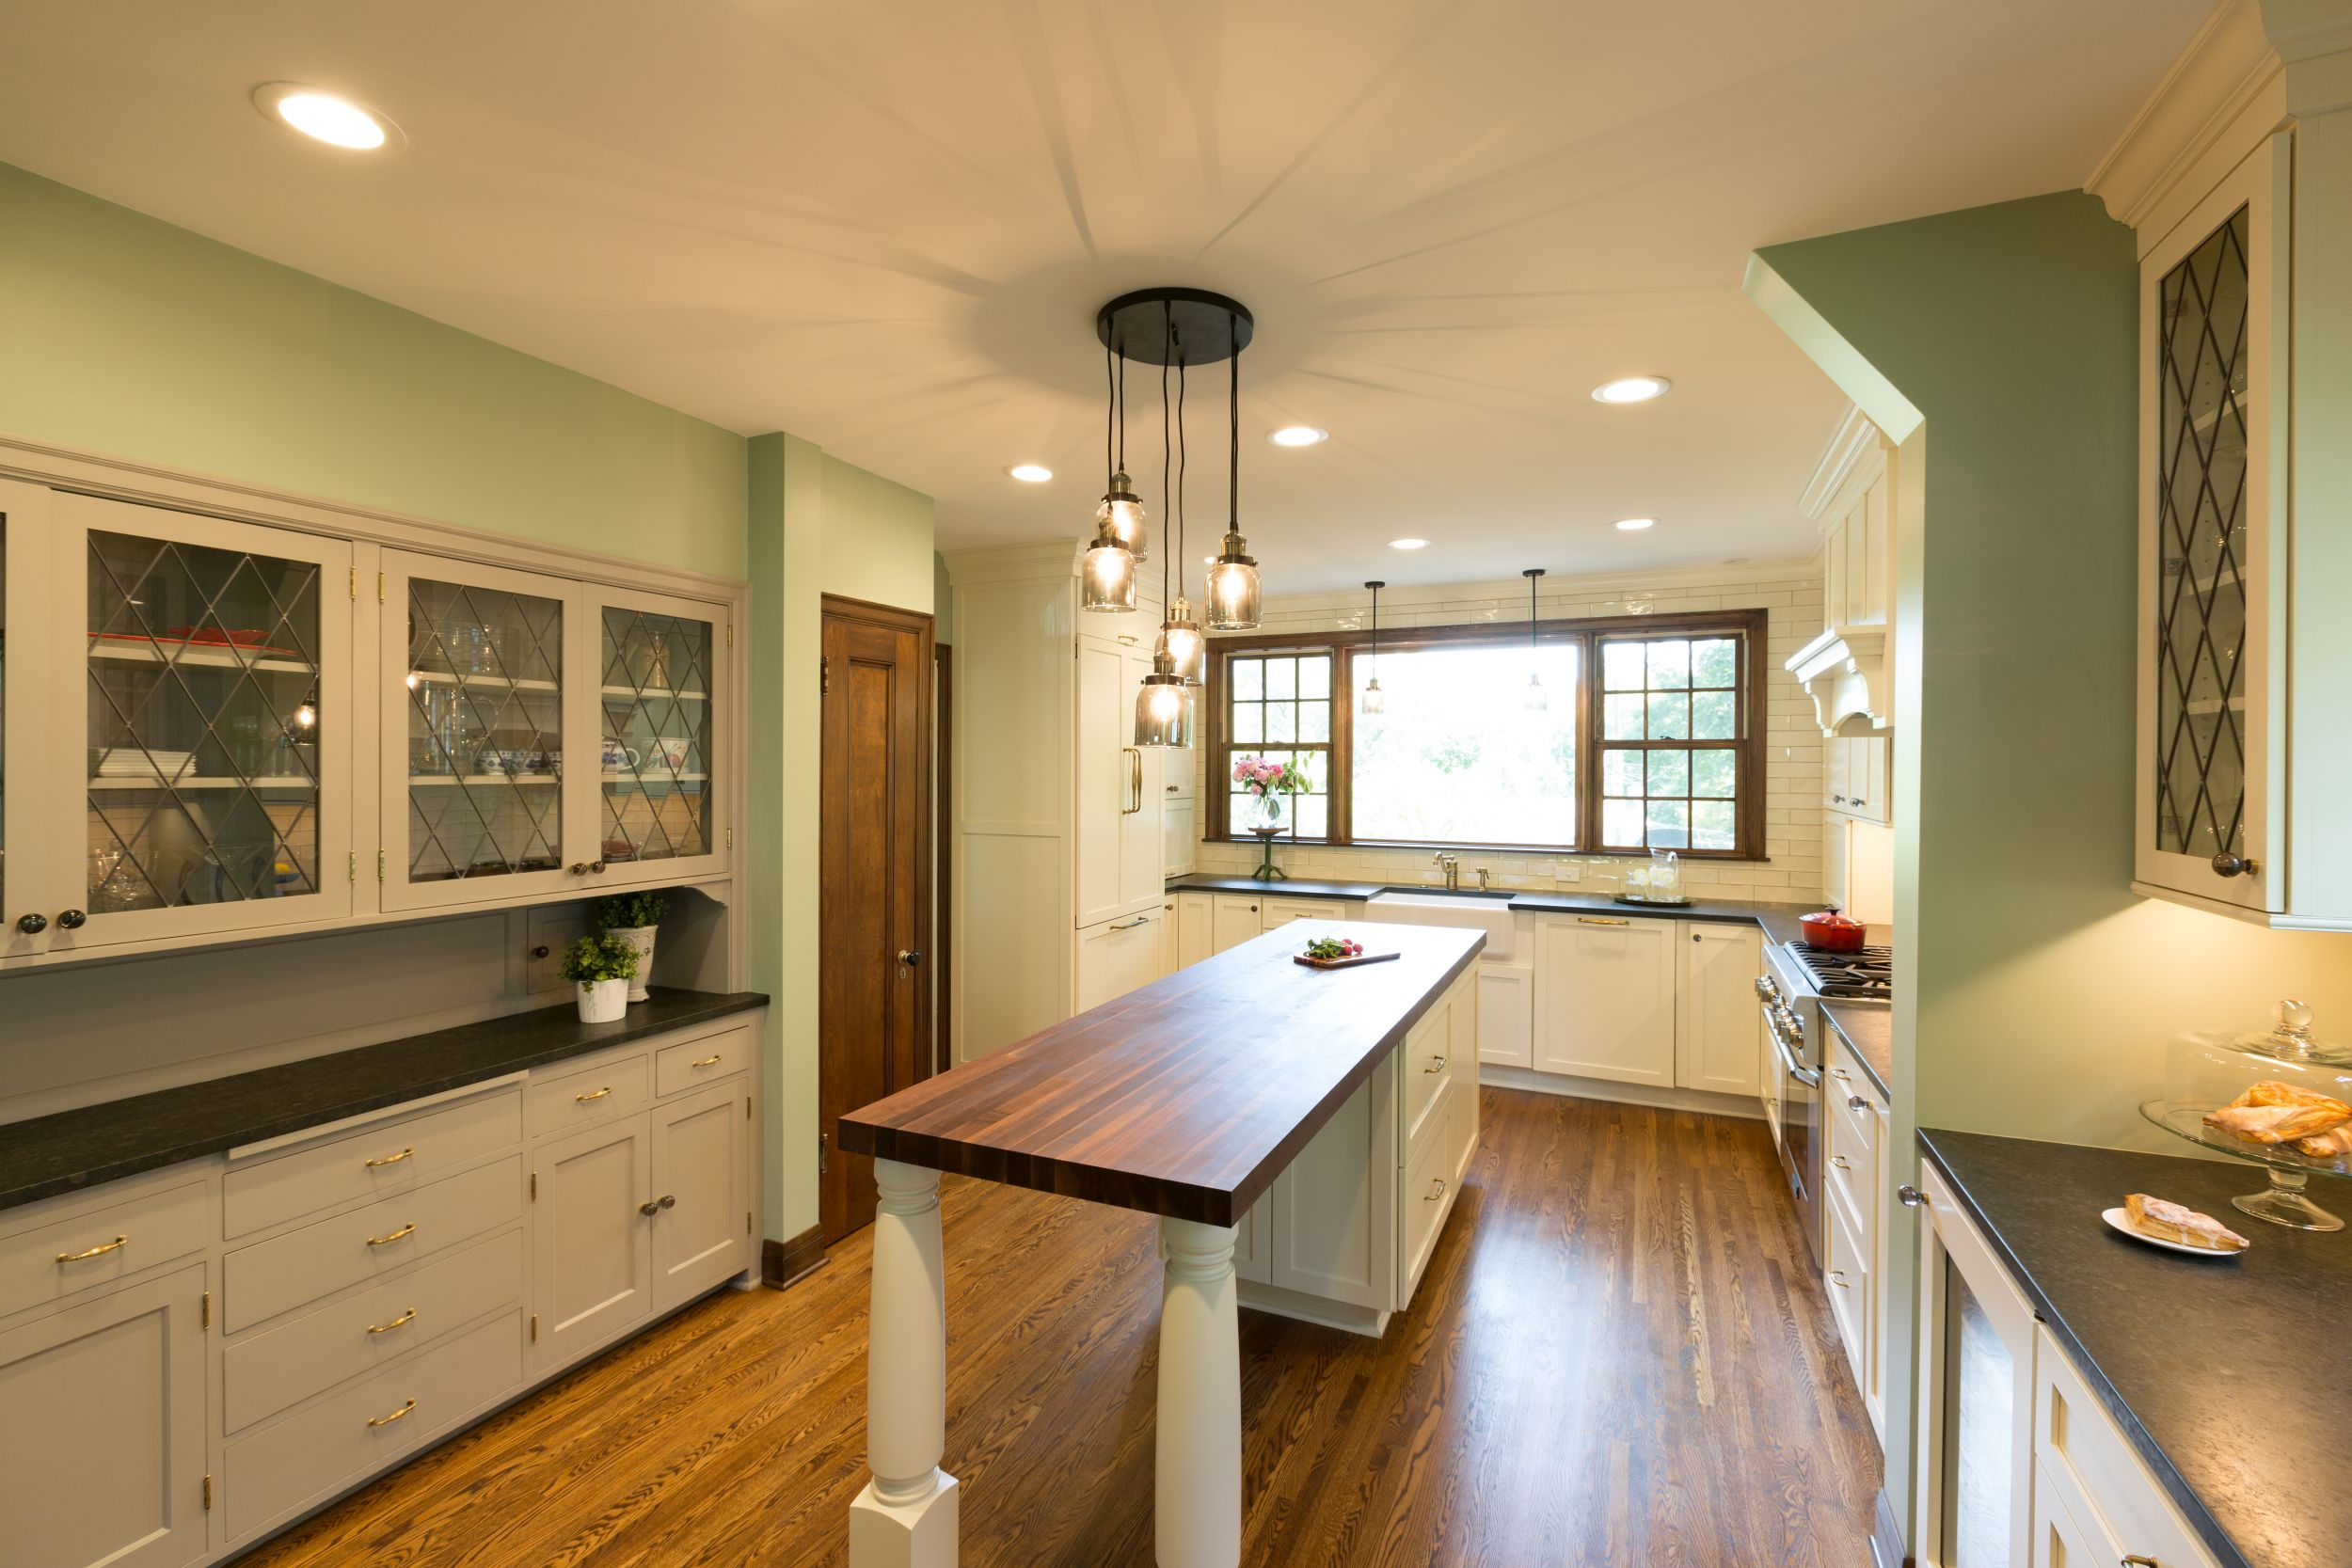 Kitchen remodel with large, butcher block island.